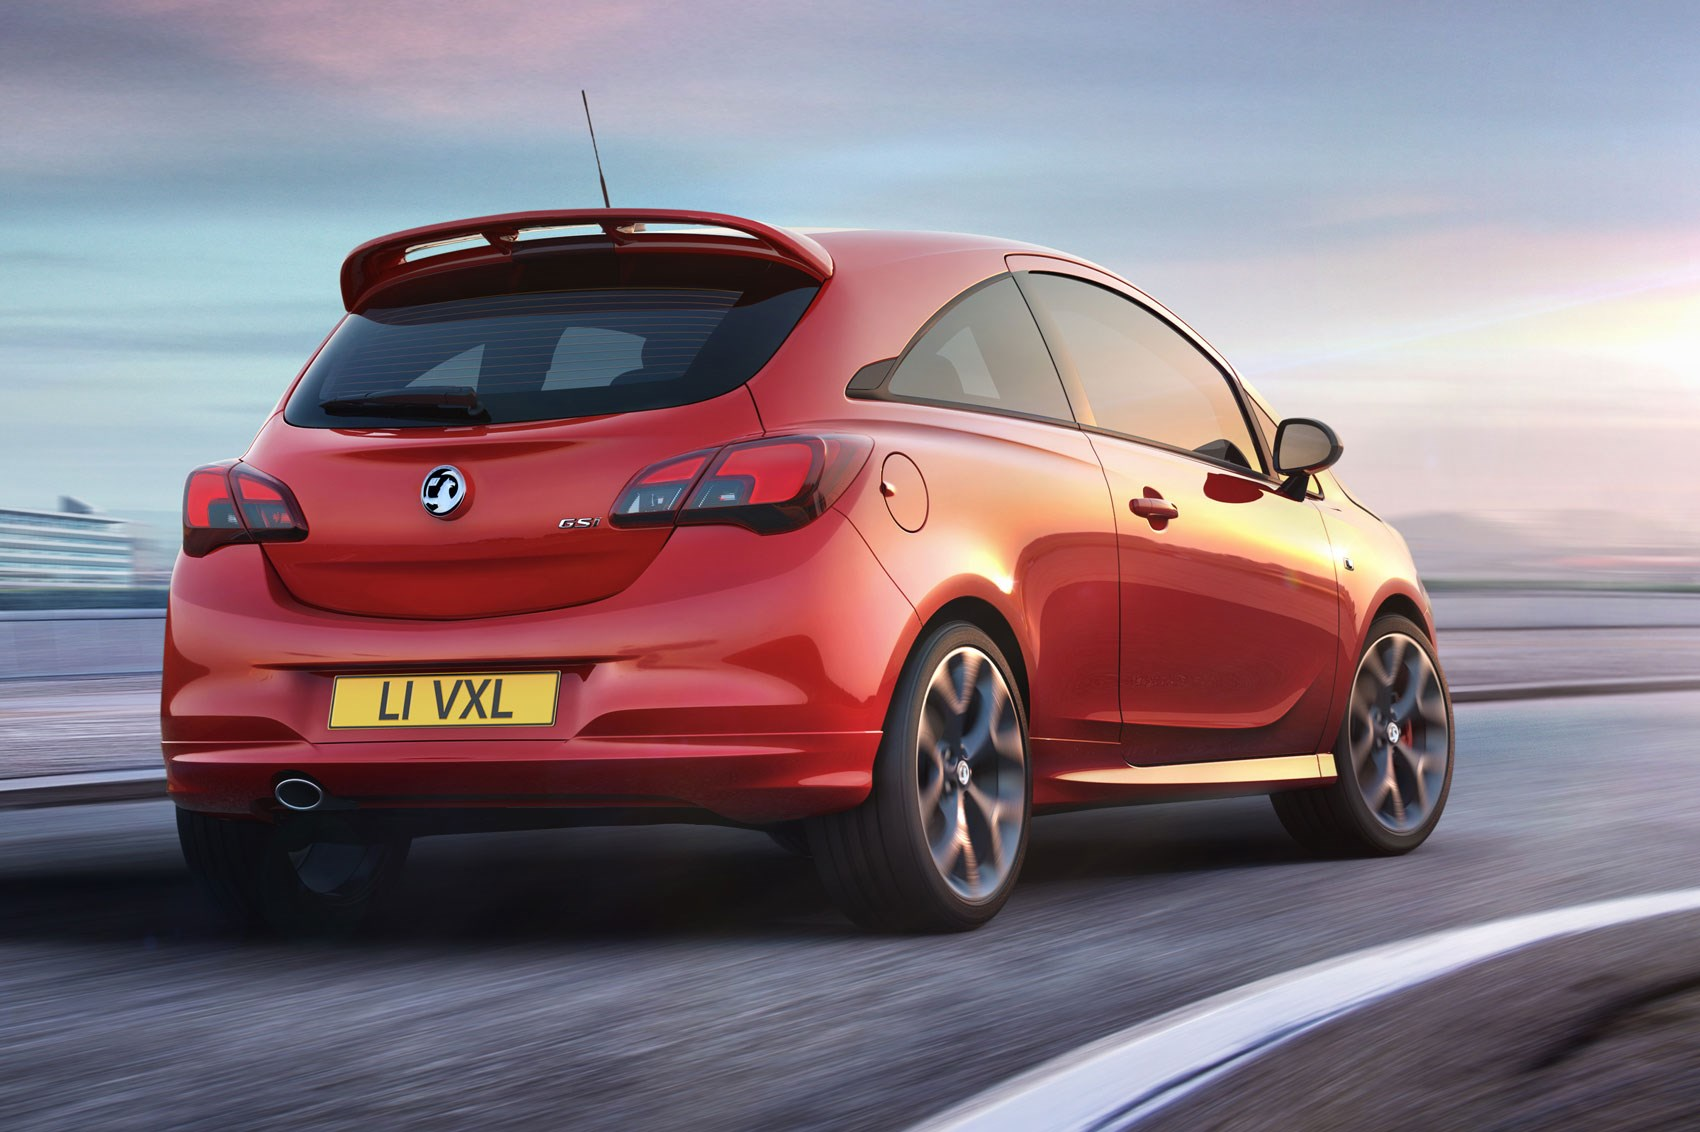 vauxhall corsa gsi performance specs confirmed car magazine. Black Bedroom Furniture Sets. Home Design Ideas